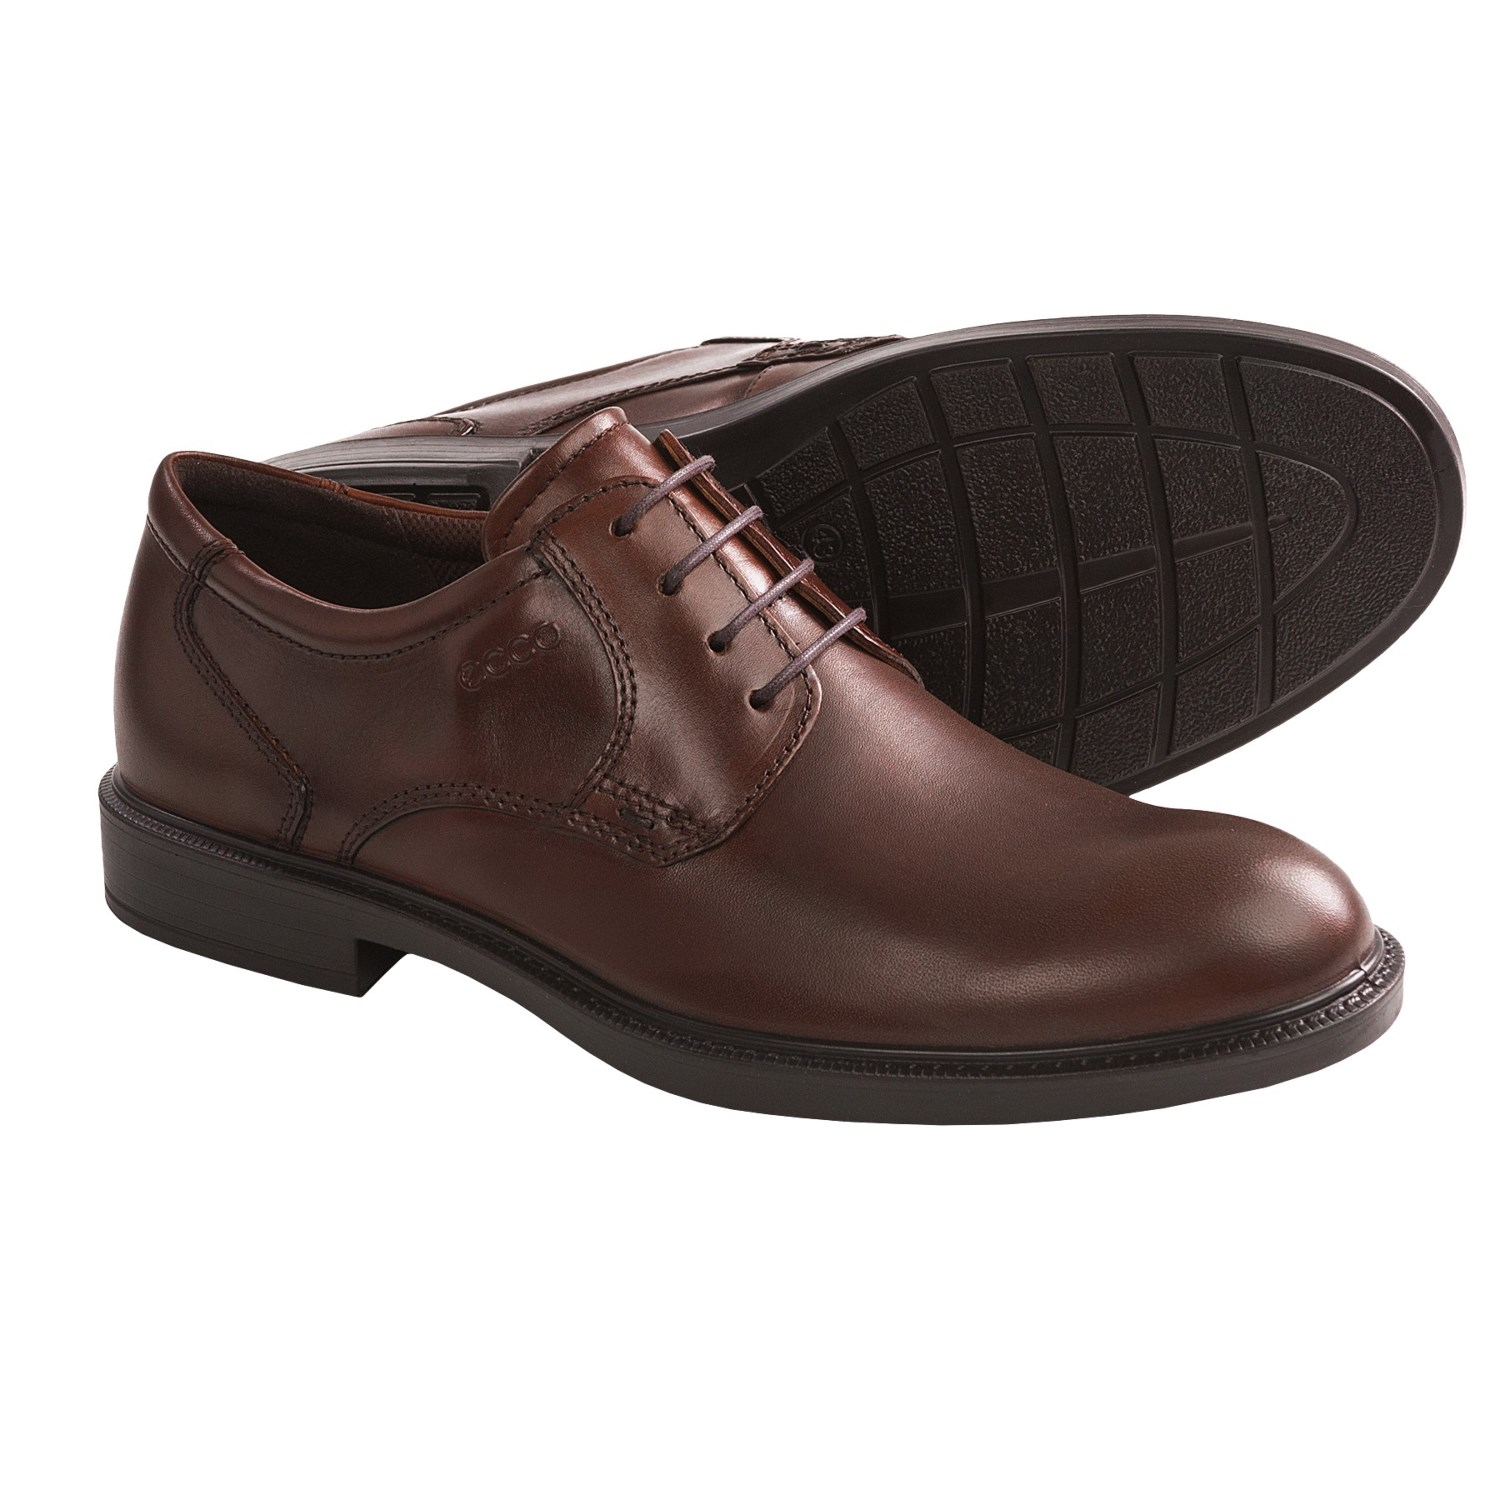 Plain Toe Oxford Brown Ecco Atlanta Plain Toe Oxford